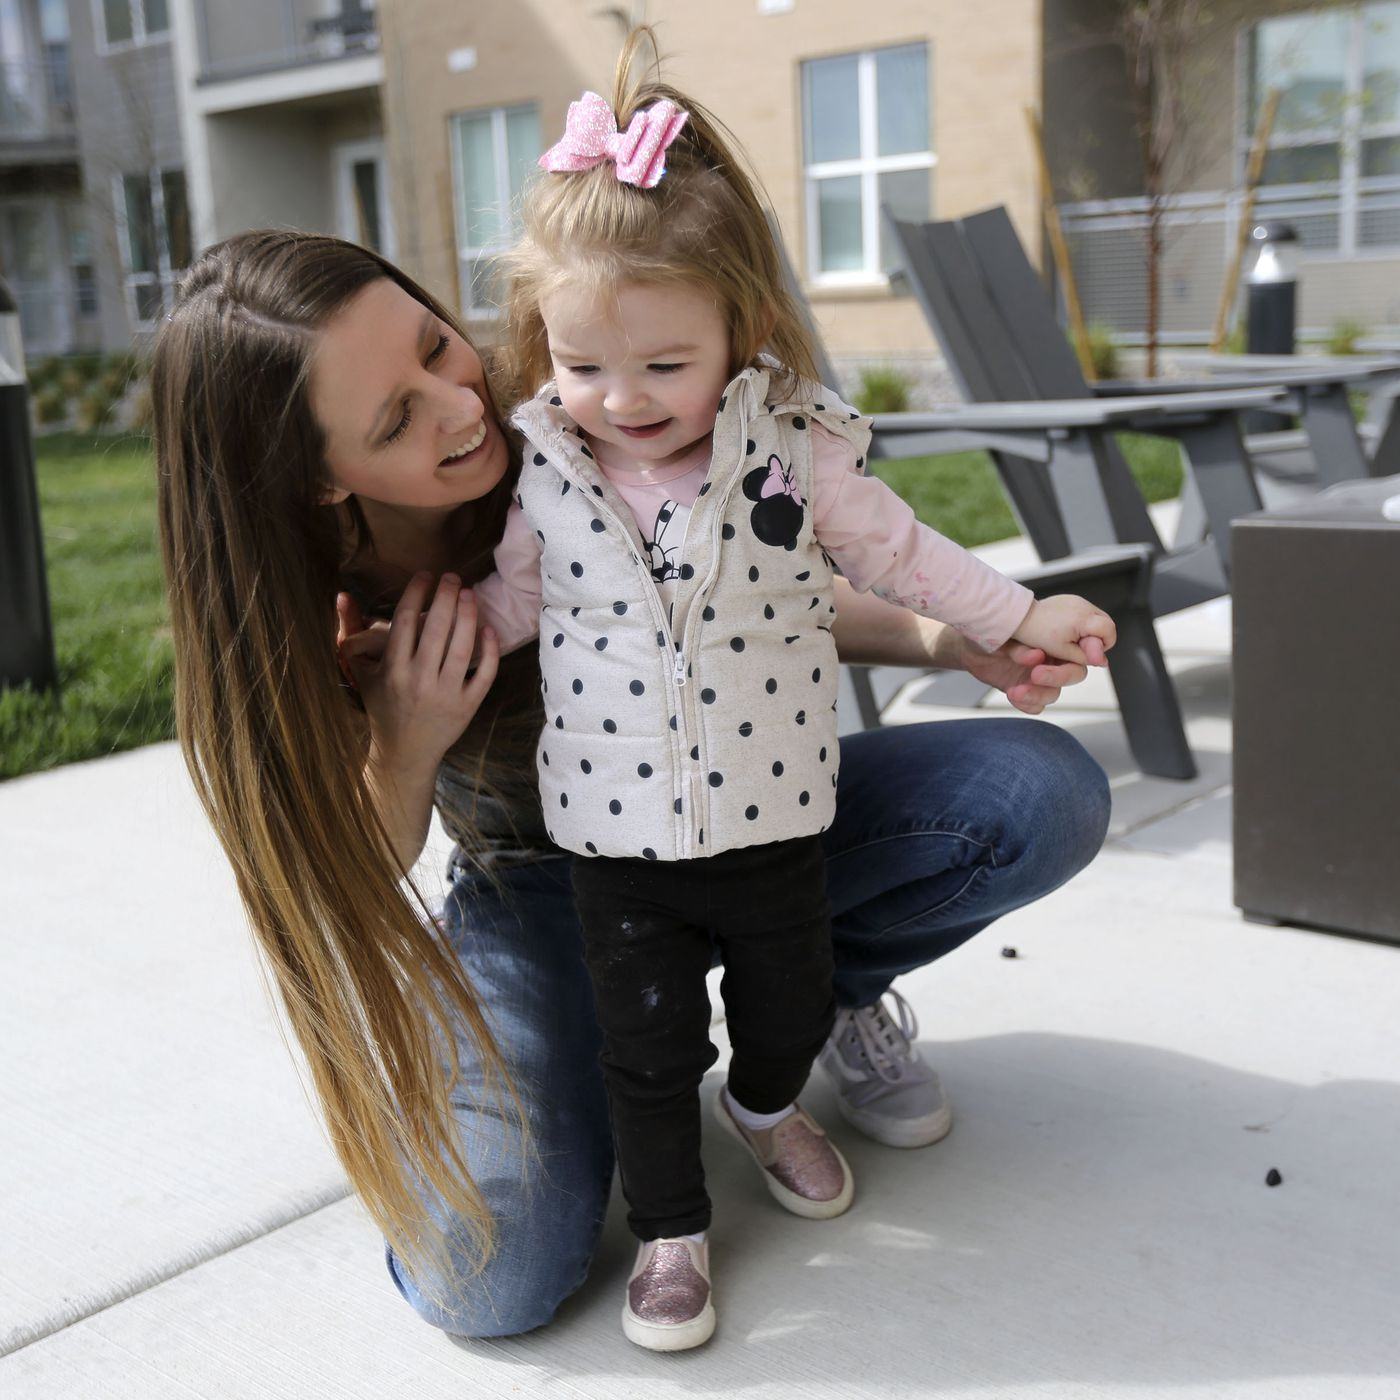 Some Utahns Can Defer Rent Until May 15 No New Evictions Until Then Deseret News